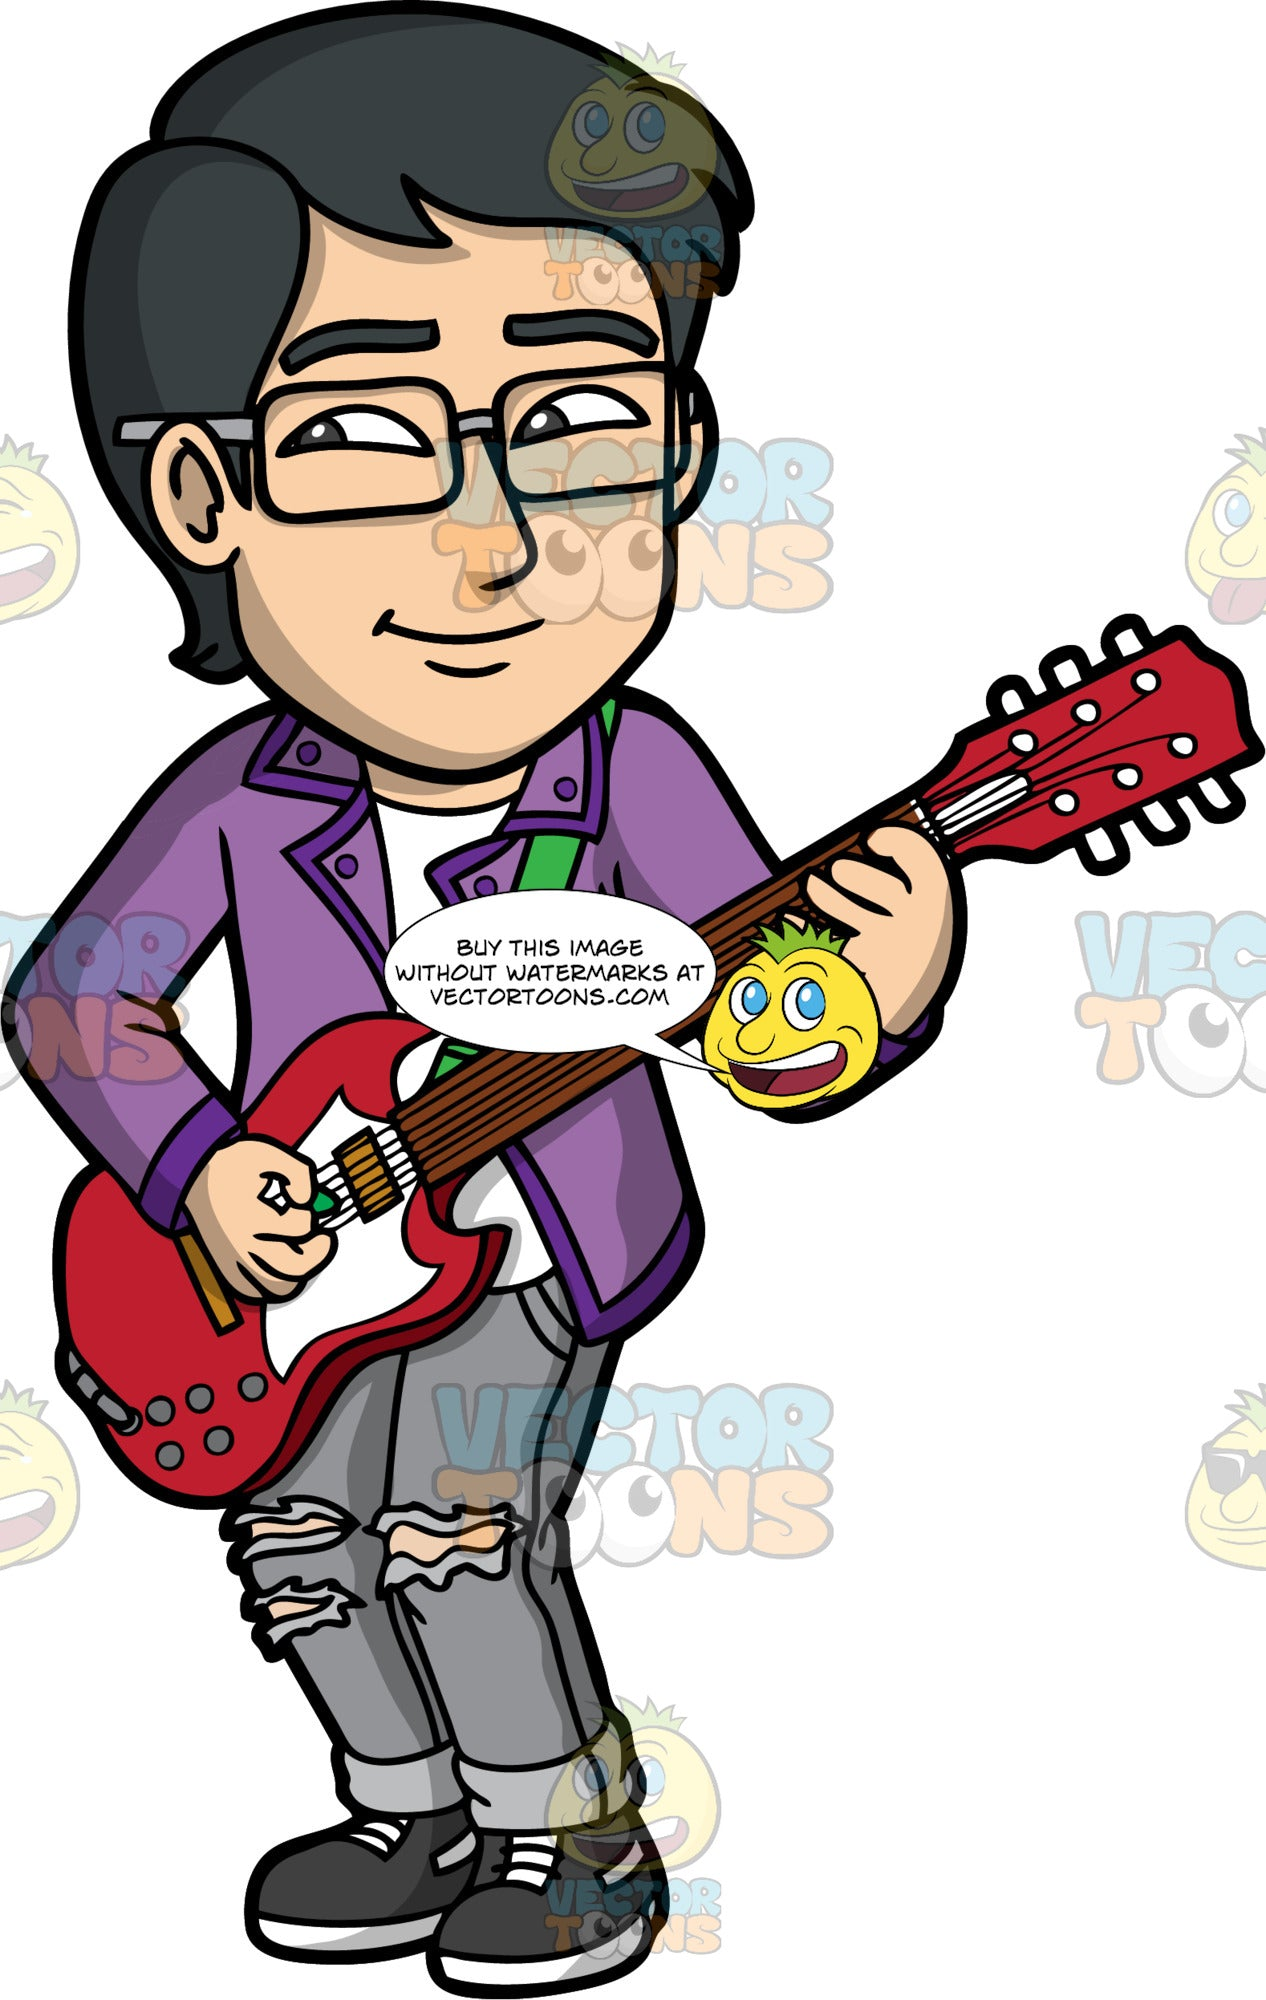 Simon Playing A Red Electric Guitar. An Asian man wearing ripped gray jeans, a purple shirt over a white t-shirt, eye glasses, and black shoes, standing and playing a red electric guitar